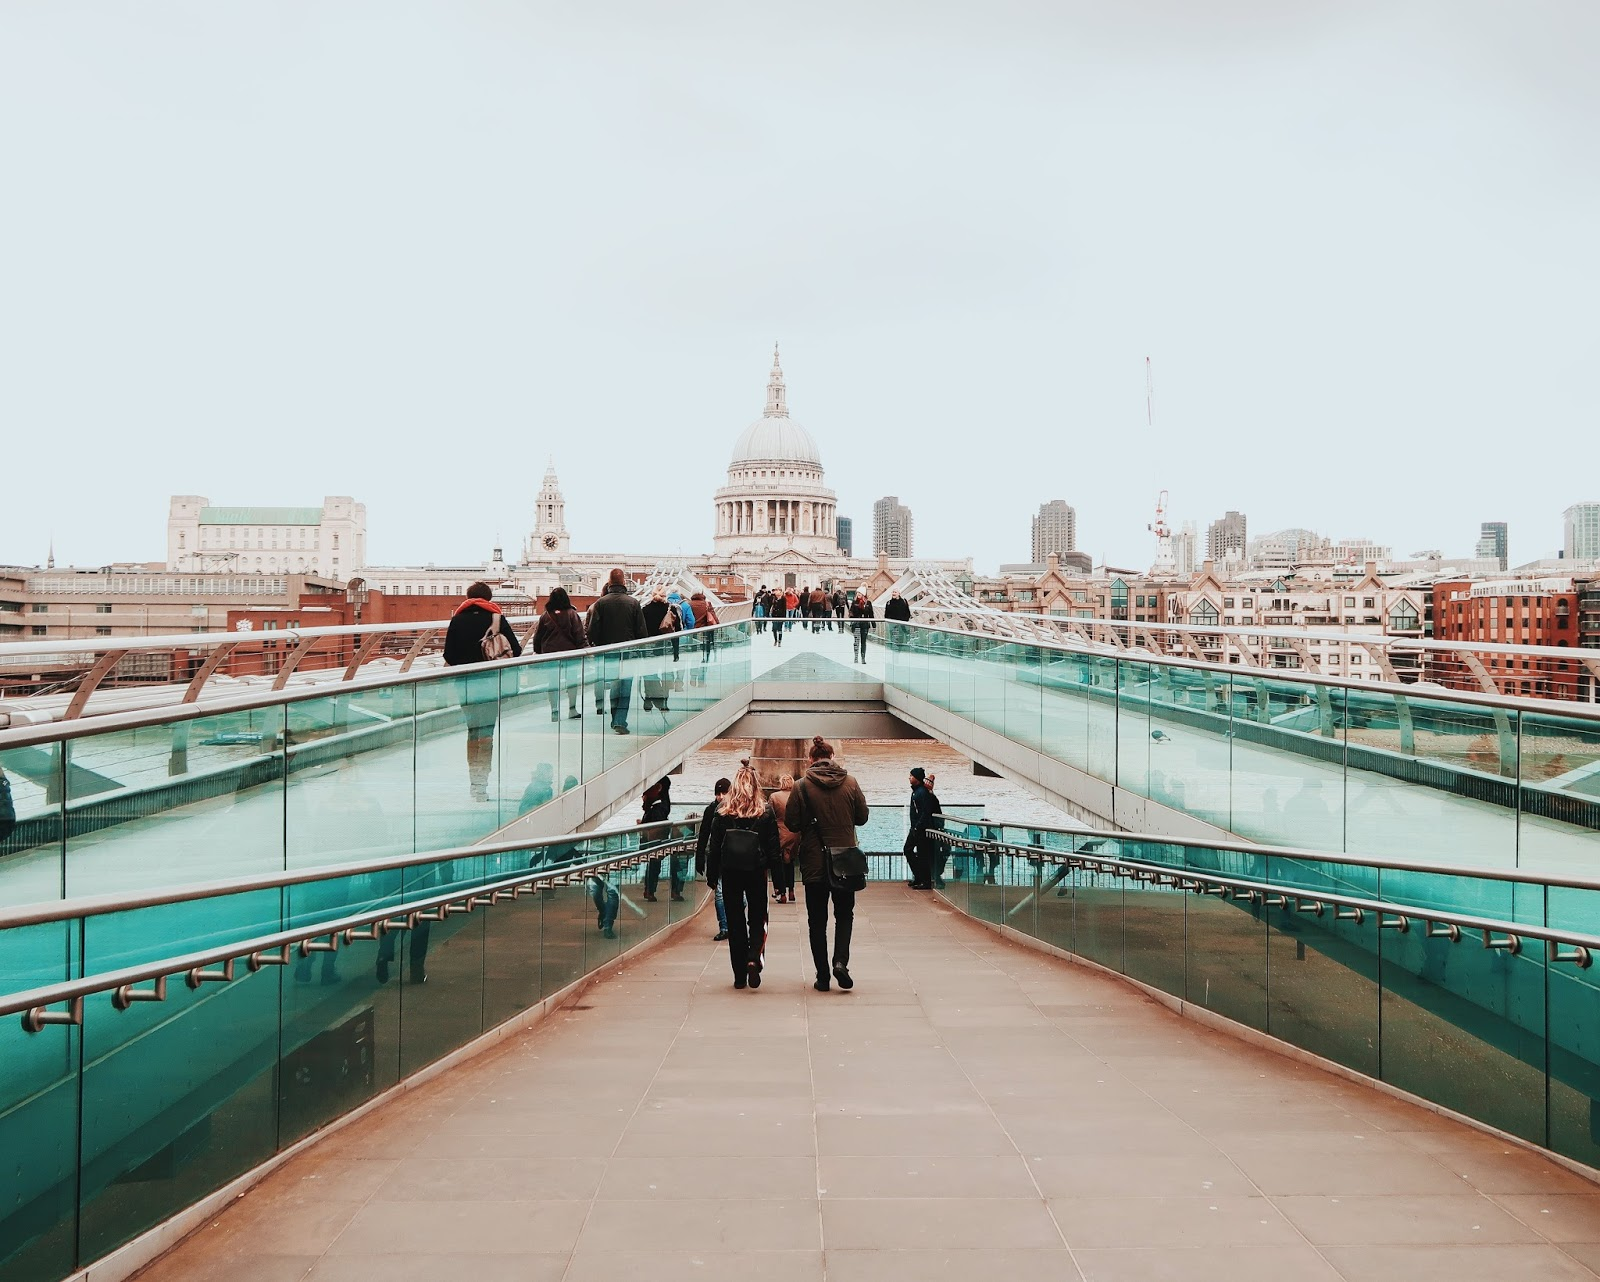 millennium-bridge-londres